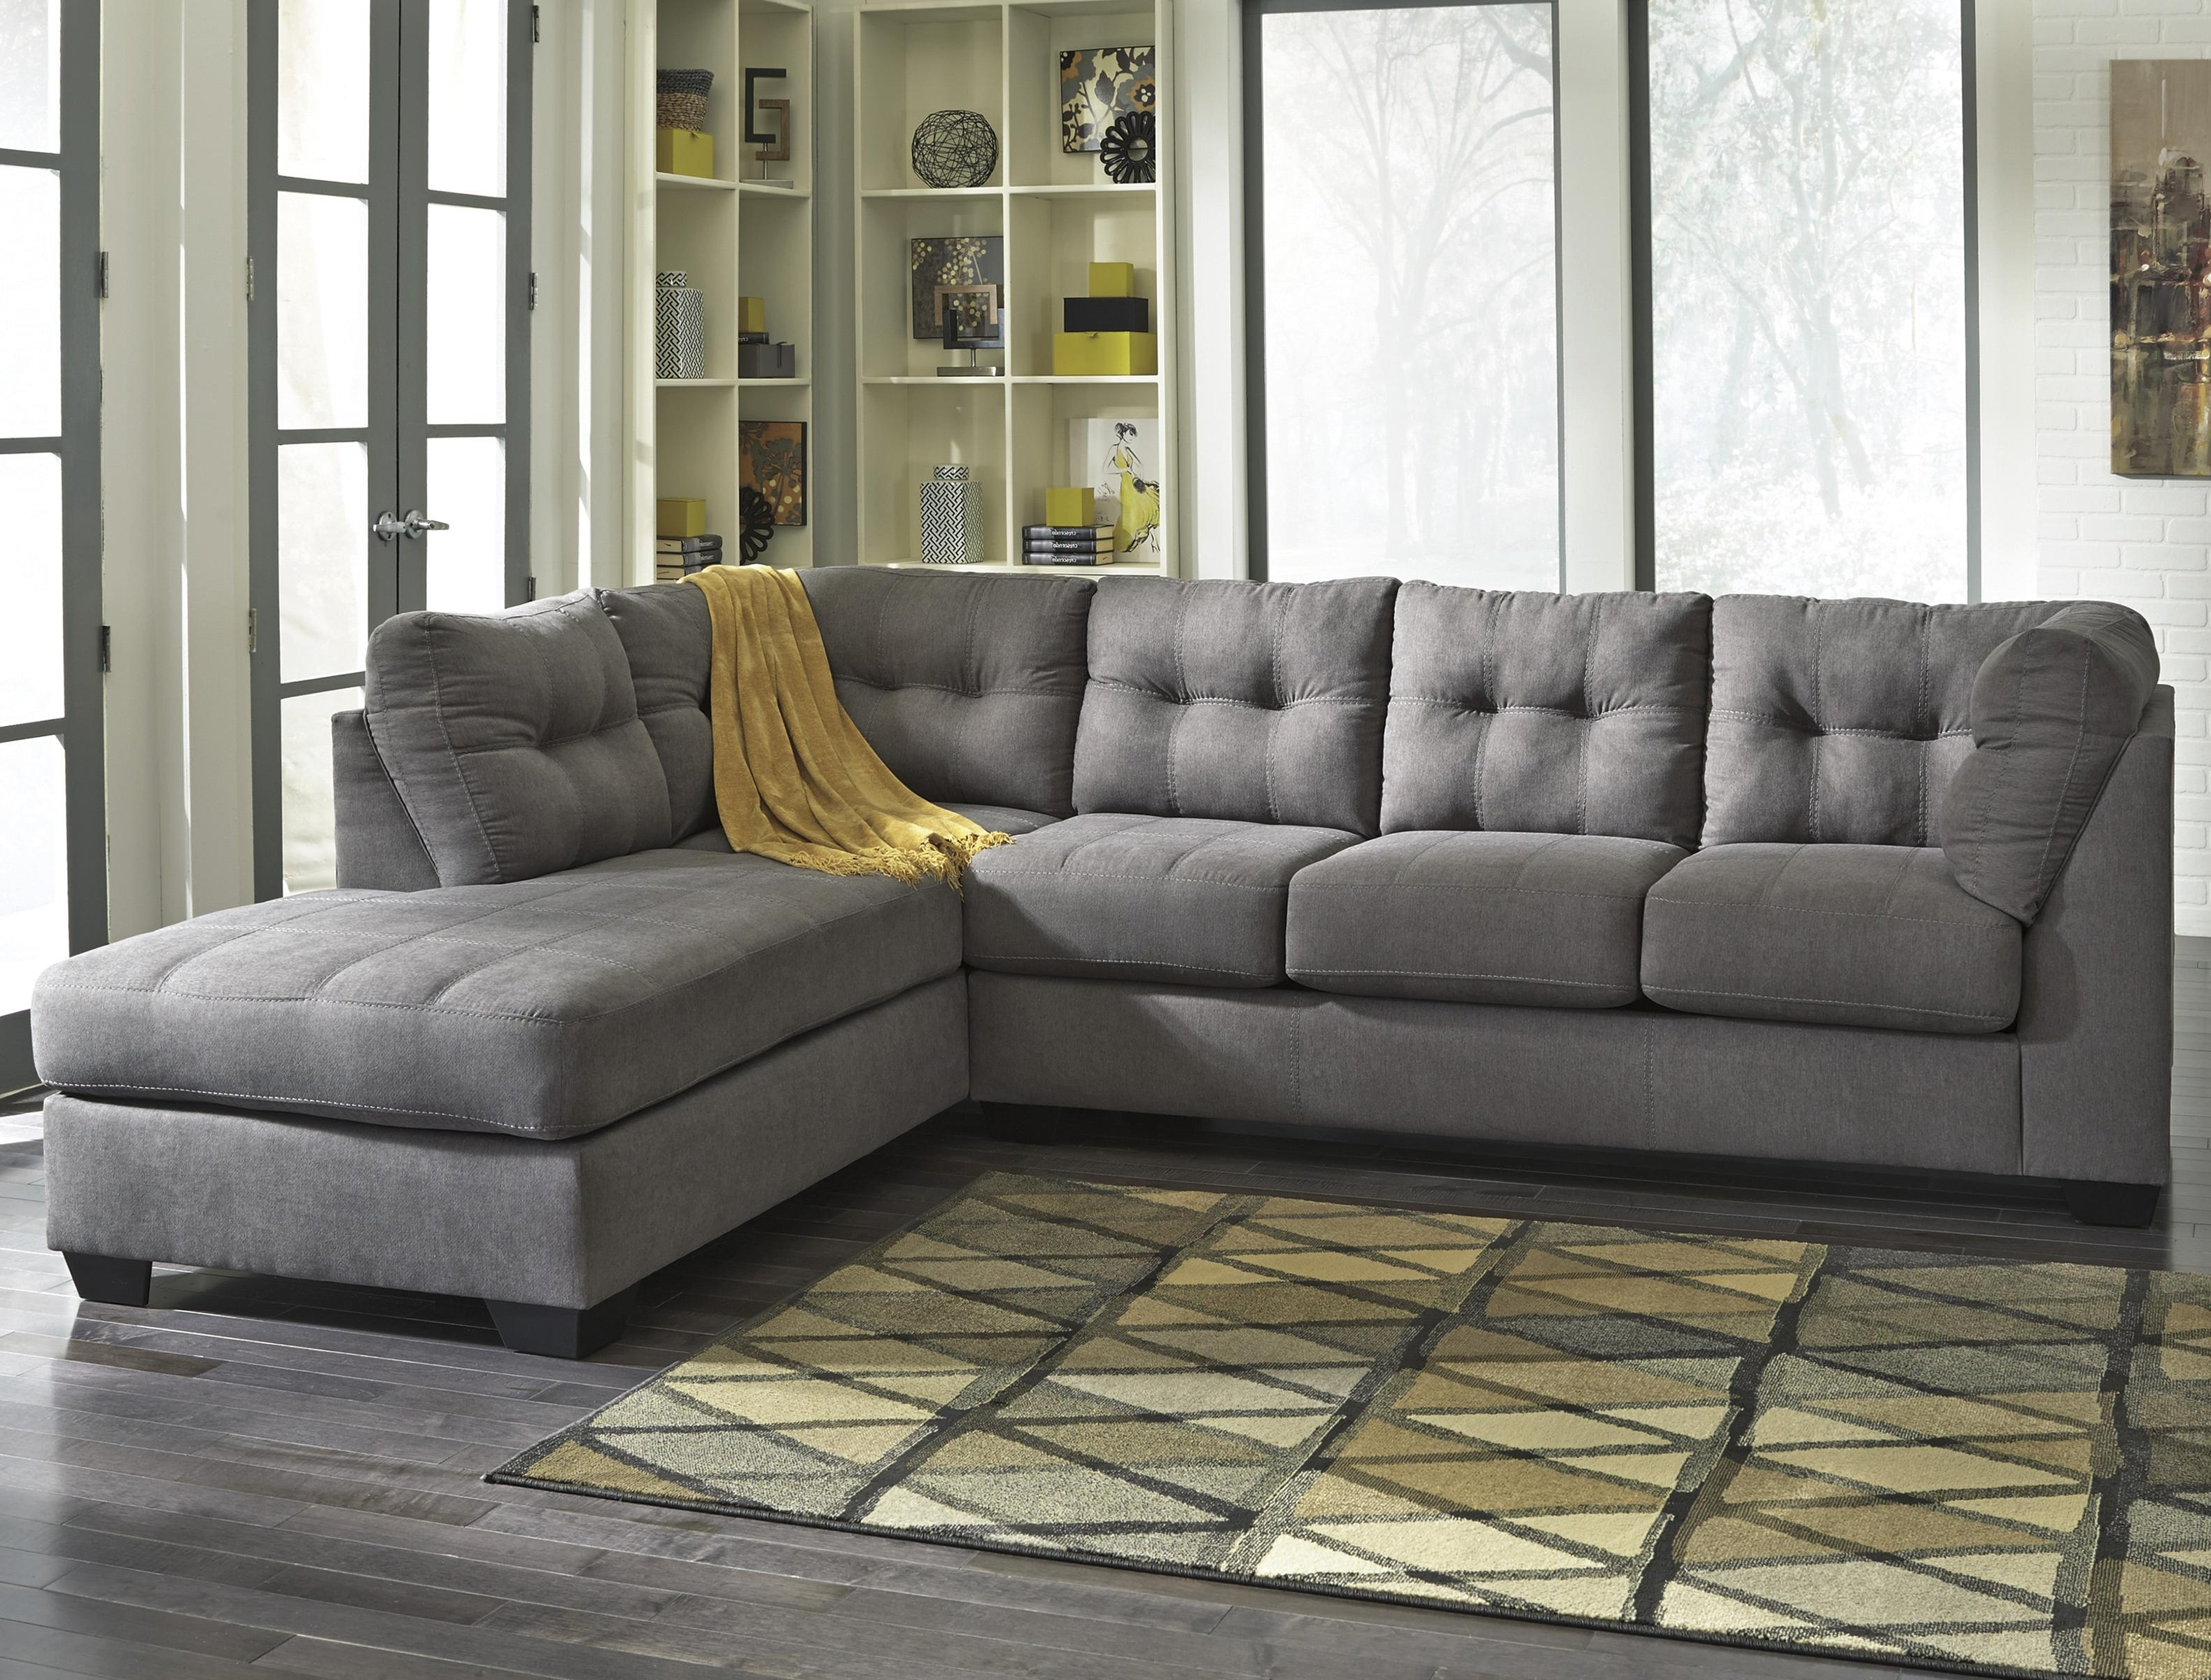 Current Benchcraft Maier – Charcoal 2 Piece Sectional W/ Sleeper Sofa Intended For Sectional Sleeper Sofas With Chaise (View 5 of 20)